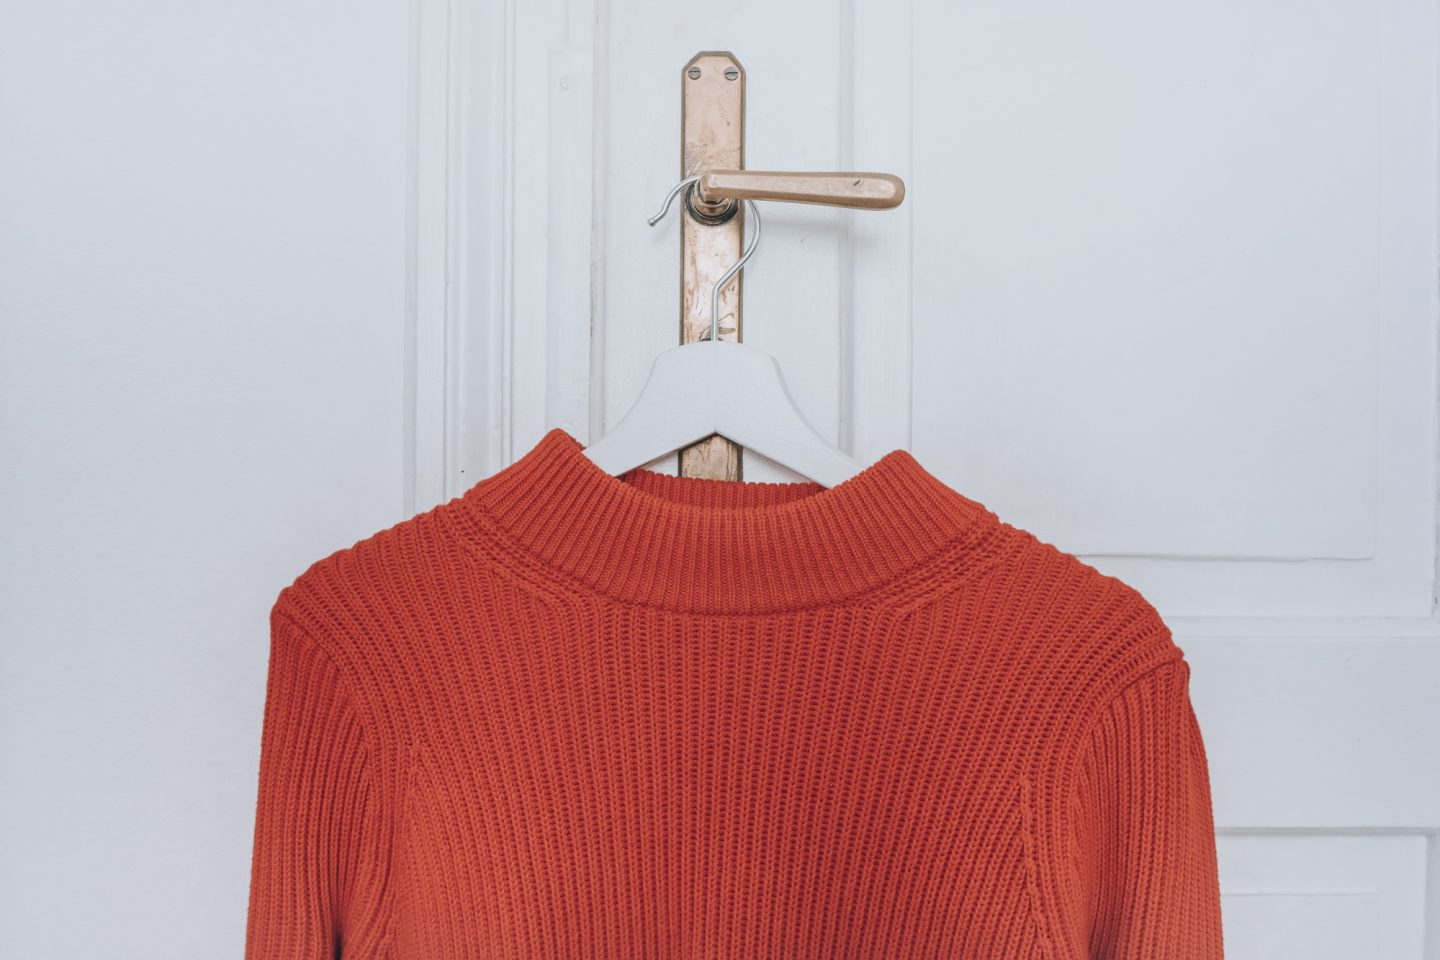 Red Knitted Sweater on a hanger